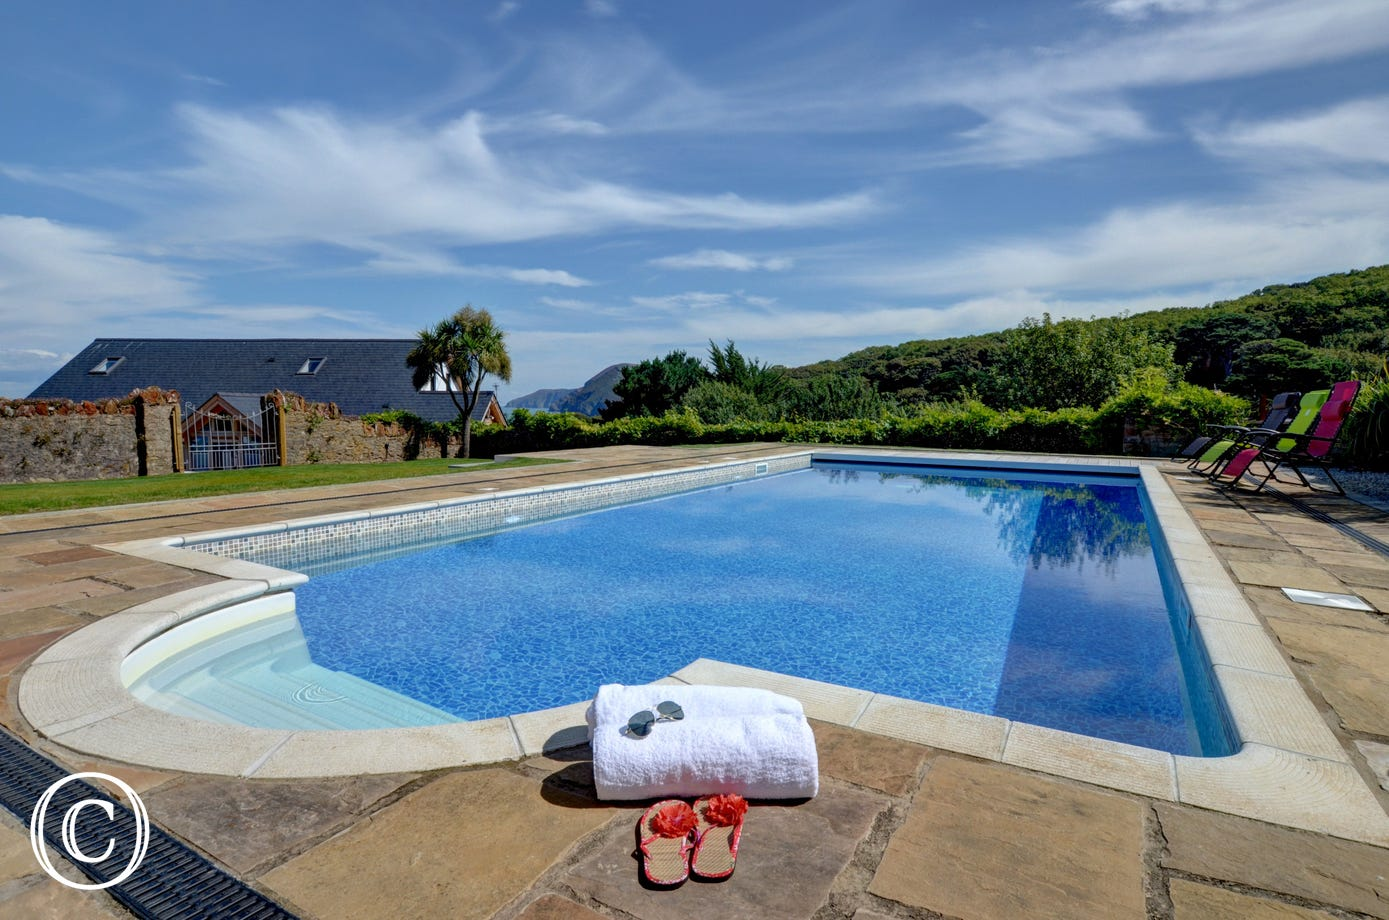 Whimbrels has its own heated outdoor swimming pool in a secluded, enclosed setting enjoying splendid views over the coastline